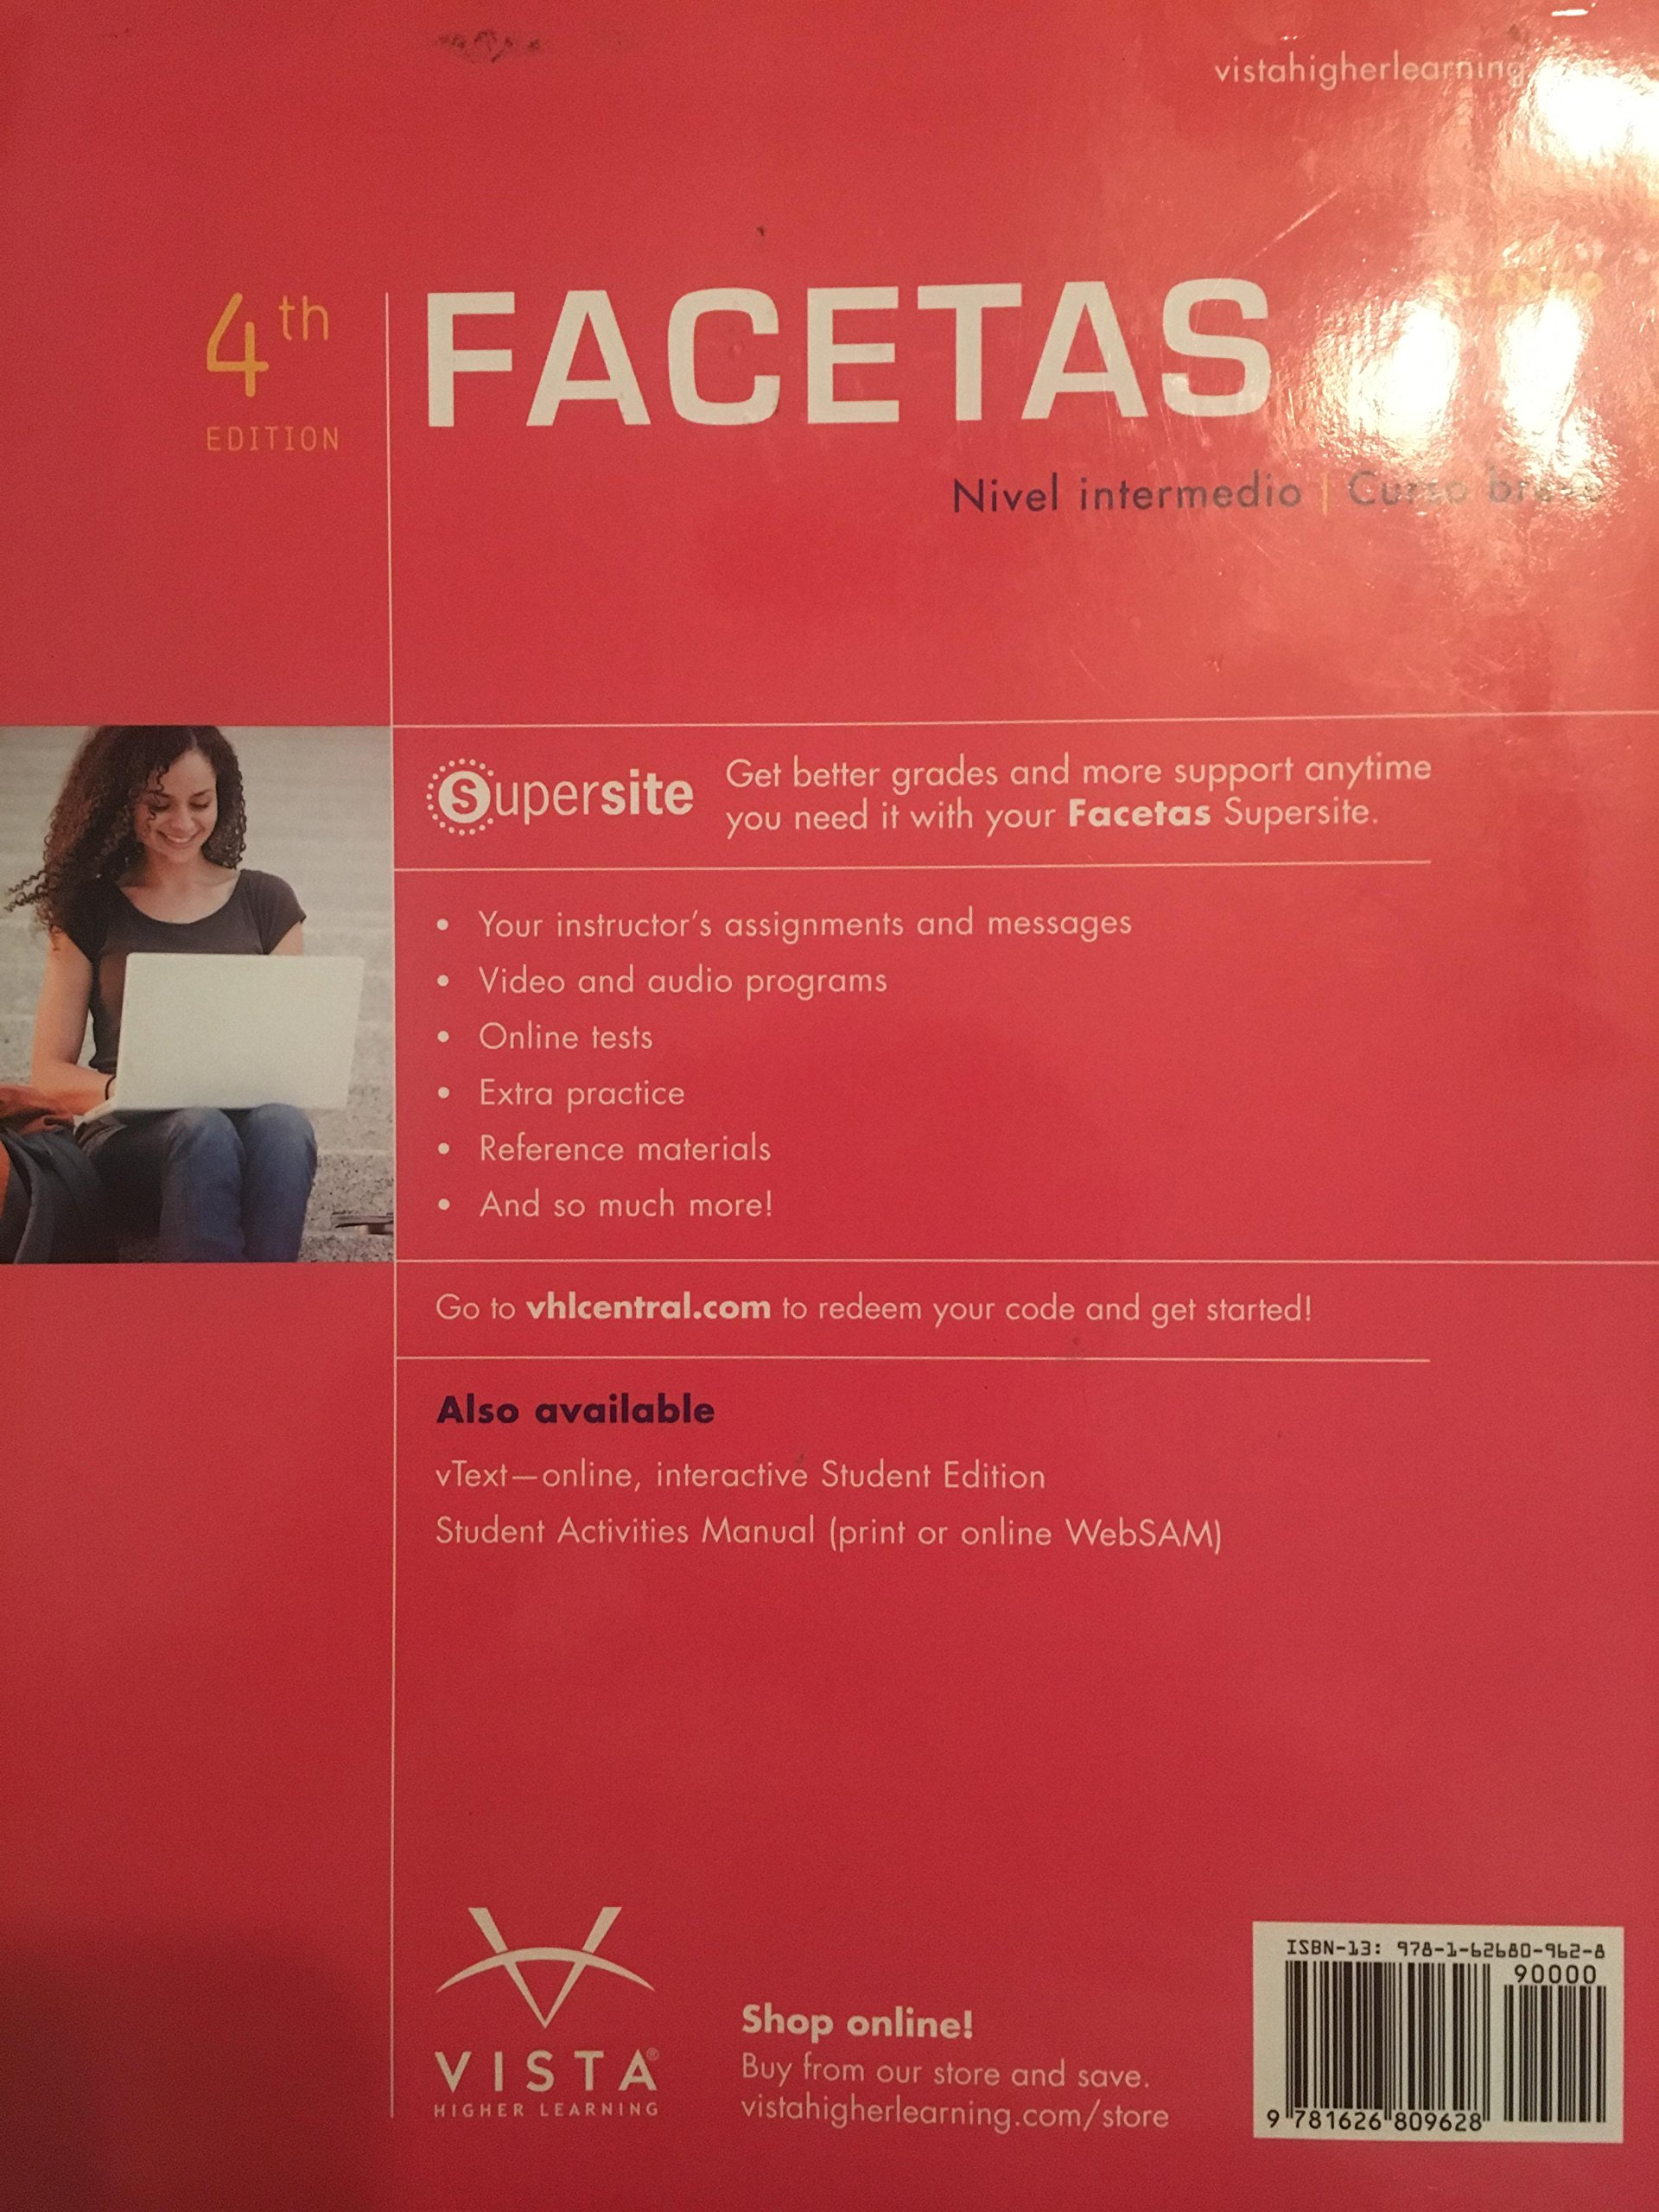 Facetas 4e Student Edition: Jose A Blanco, vhl: 9781626809628: Amazon.com:  Books